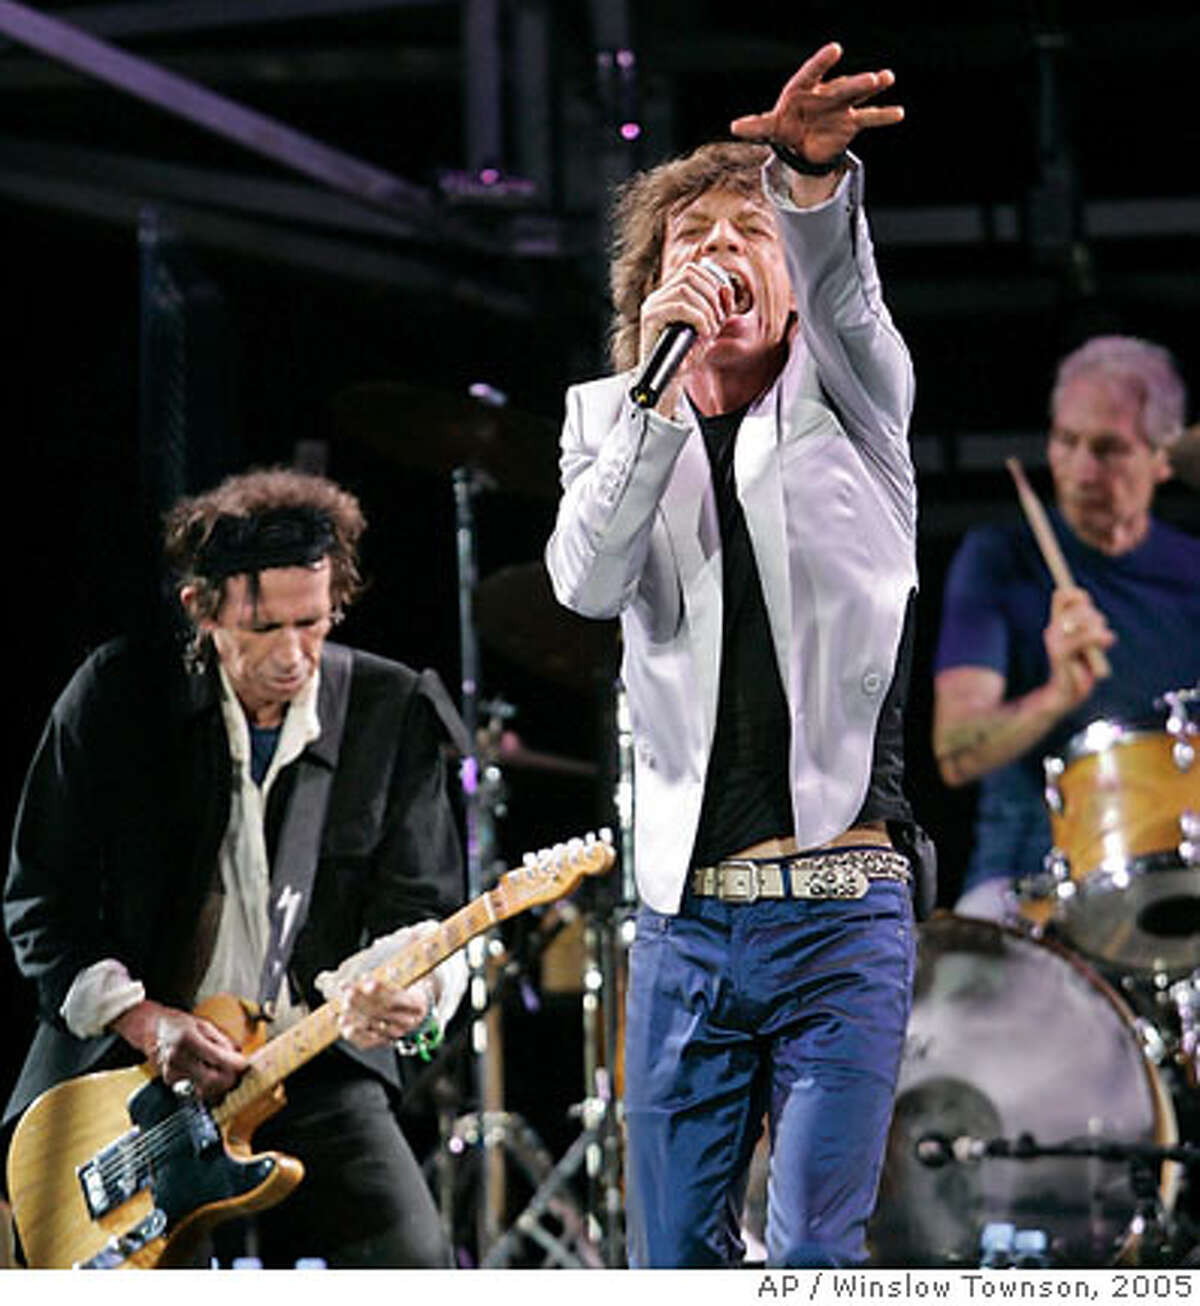 """Rolling Stones, from left, Keith Richards, Mick Jagger and Charlie Watts perform at Fenway Park in Boston Sunday, Aug. 21, 2005, where the group opened their """"A Bigger Bang"""" world tour. (AP Photo/Winslow Townson) Ran on: 08-22-2005 Ran on: 08-22-2005"""